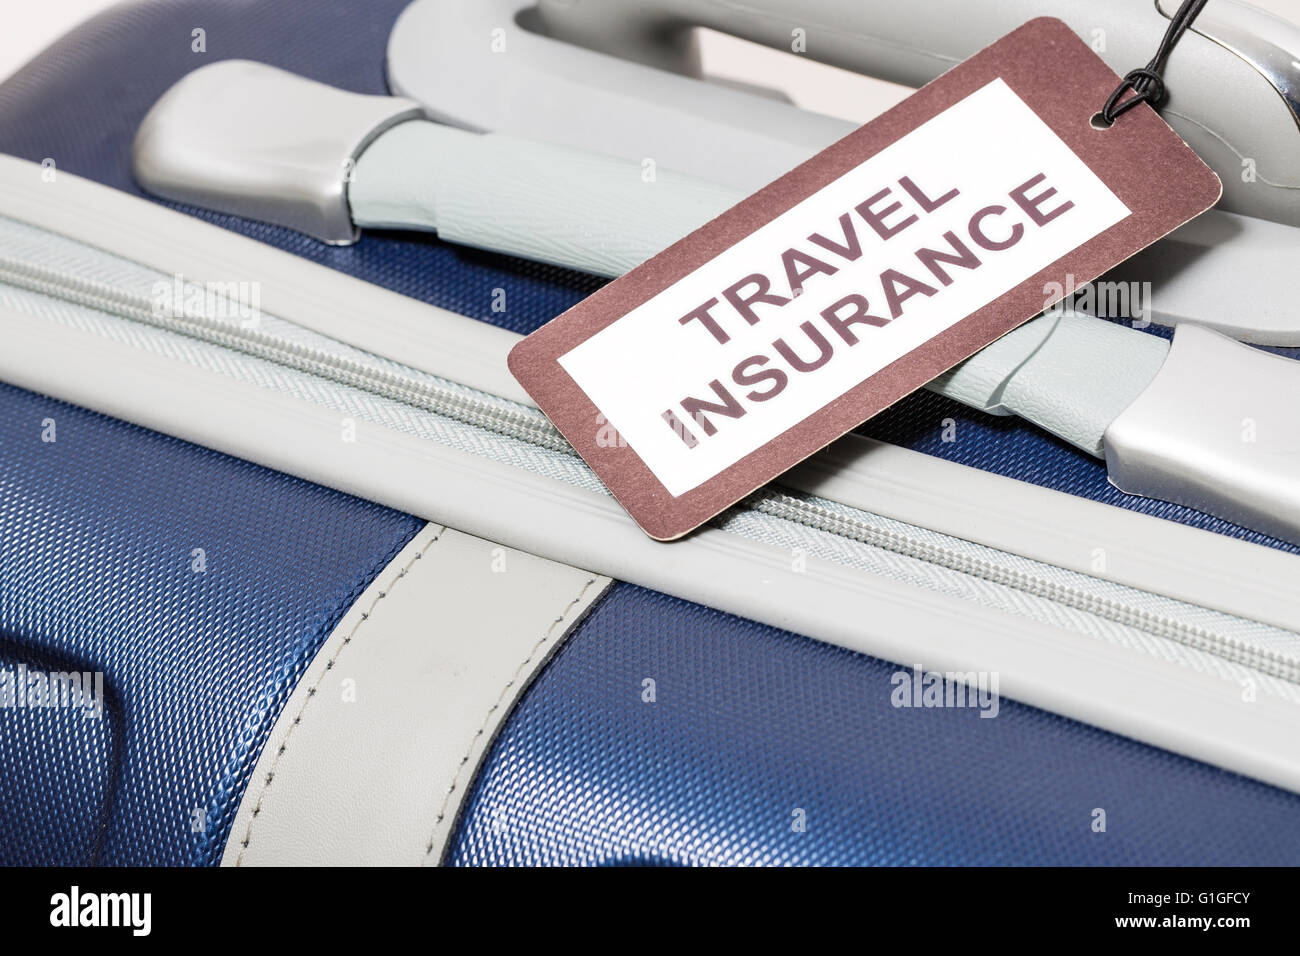 Travel insurance label tied to a suitcase. - Stock Image